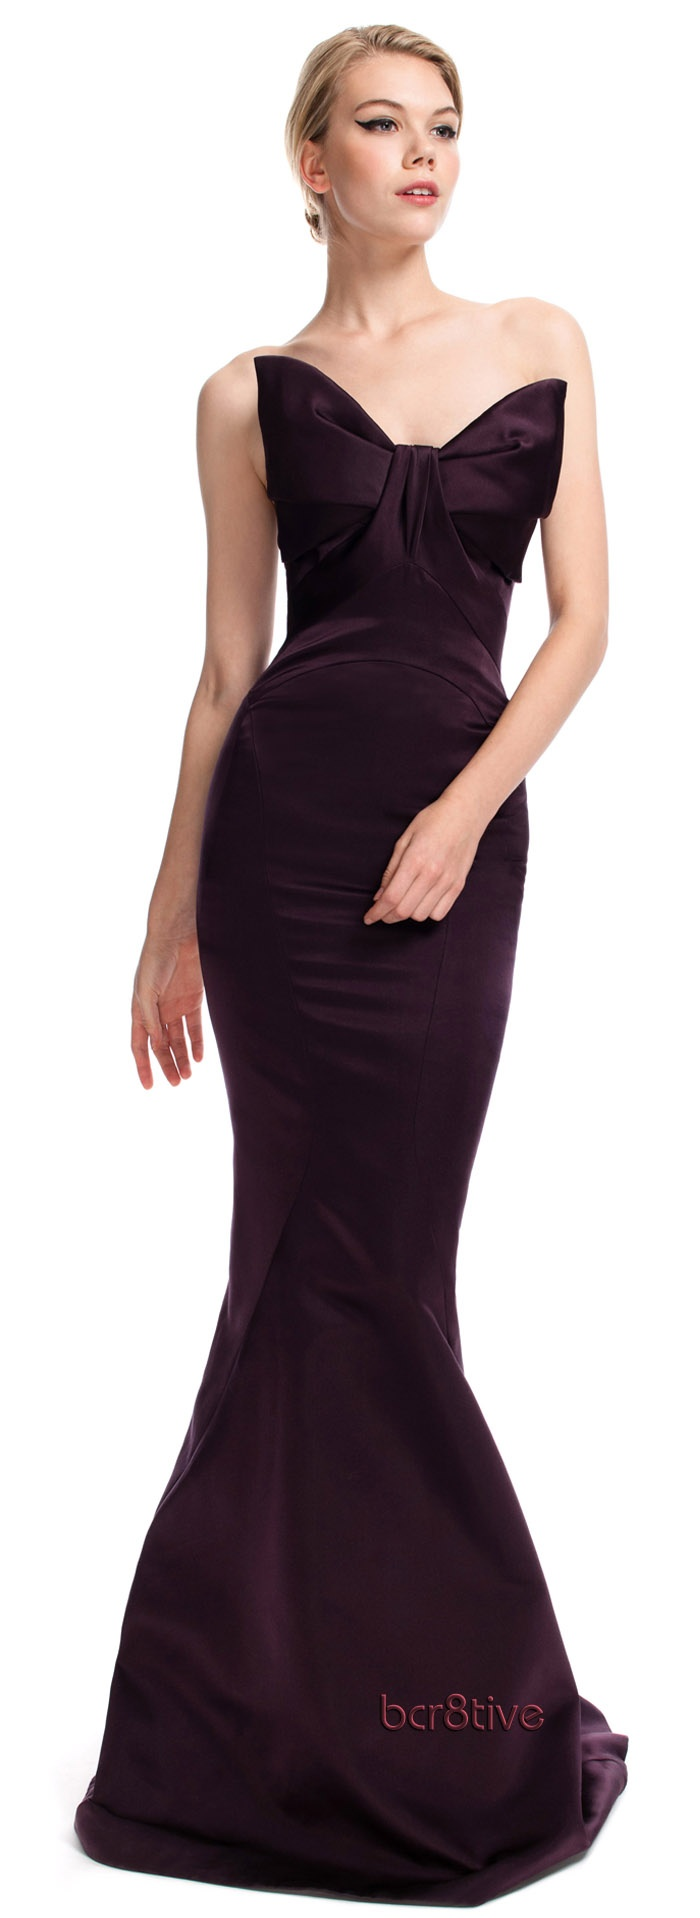 Zac Posen Bow Evening Gown